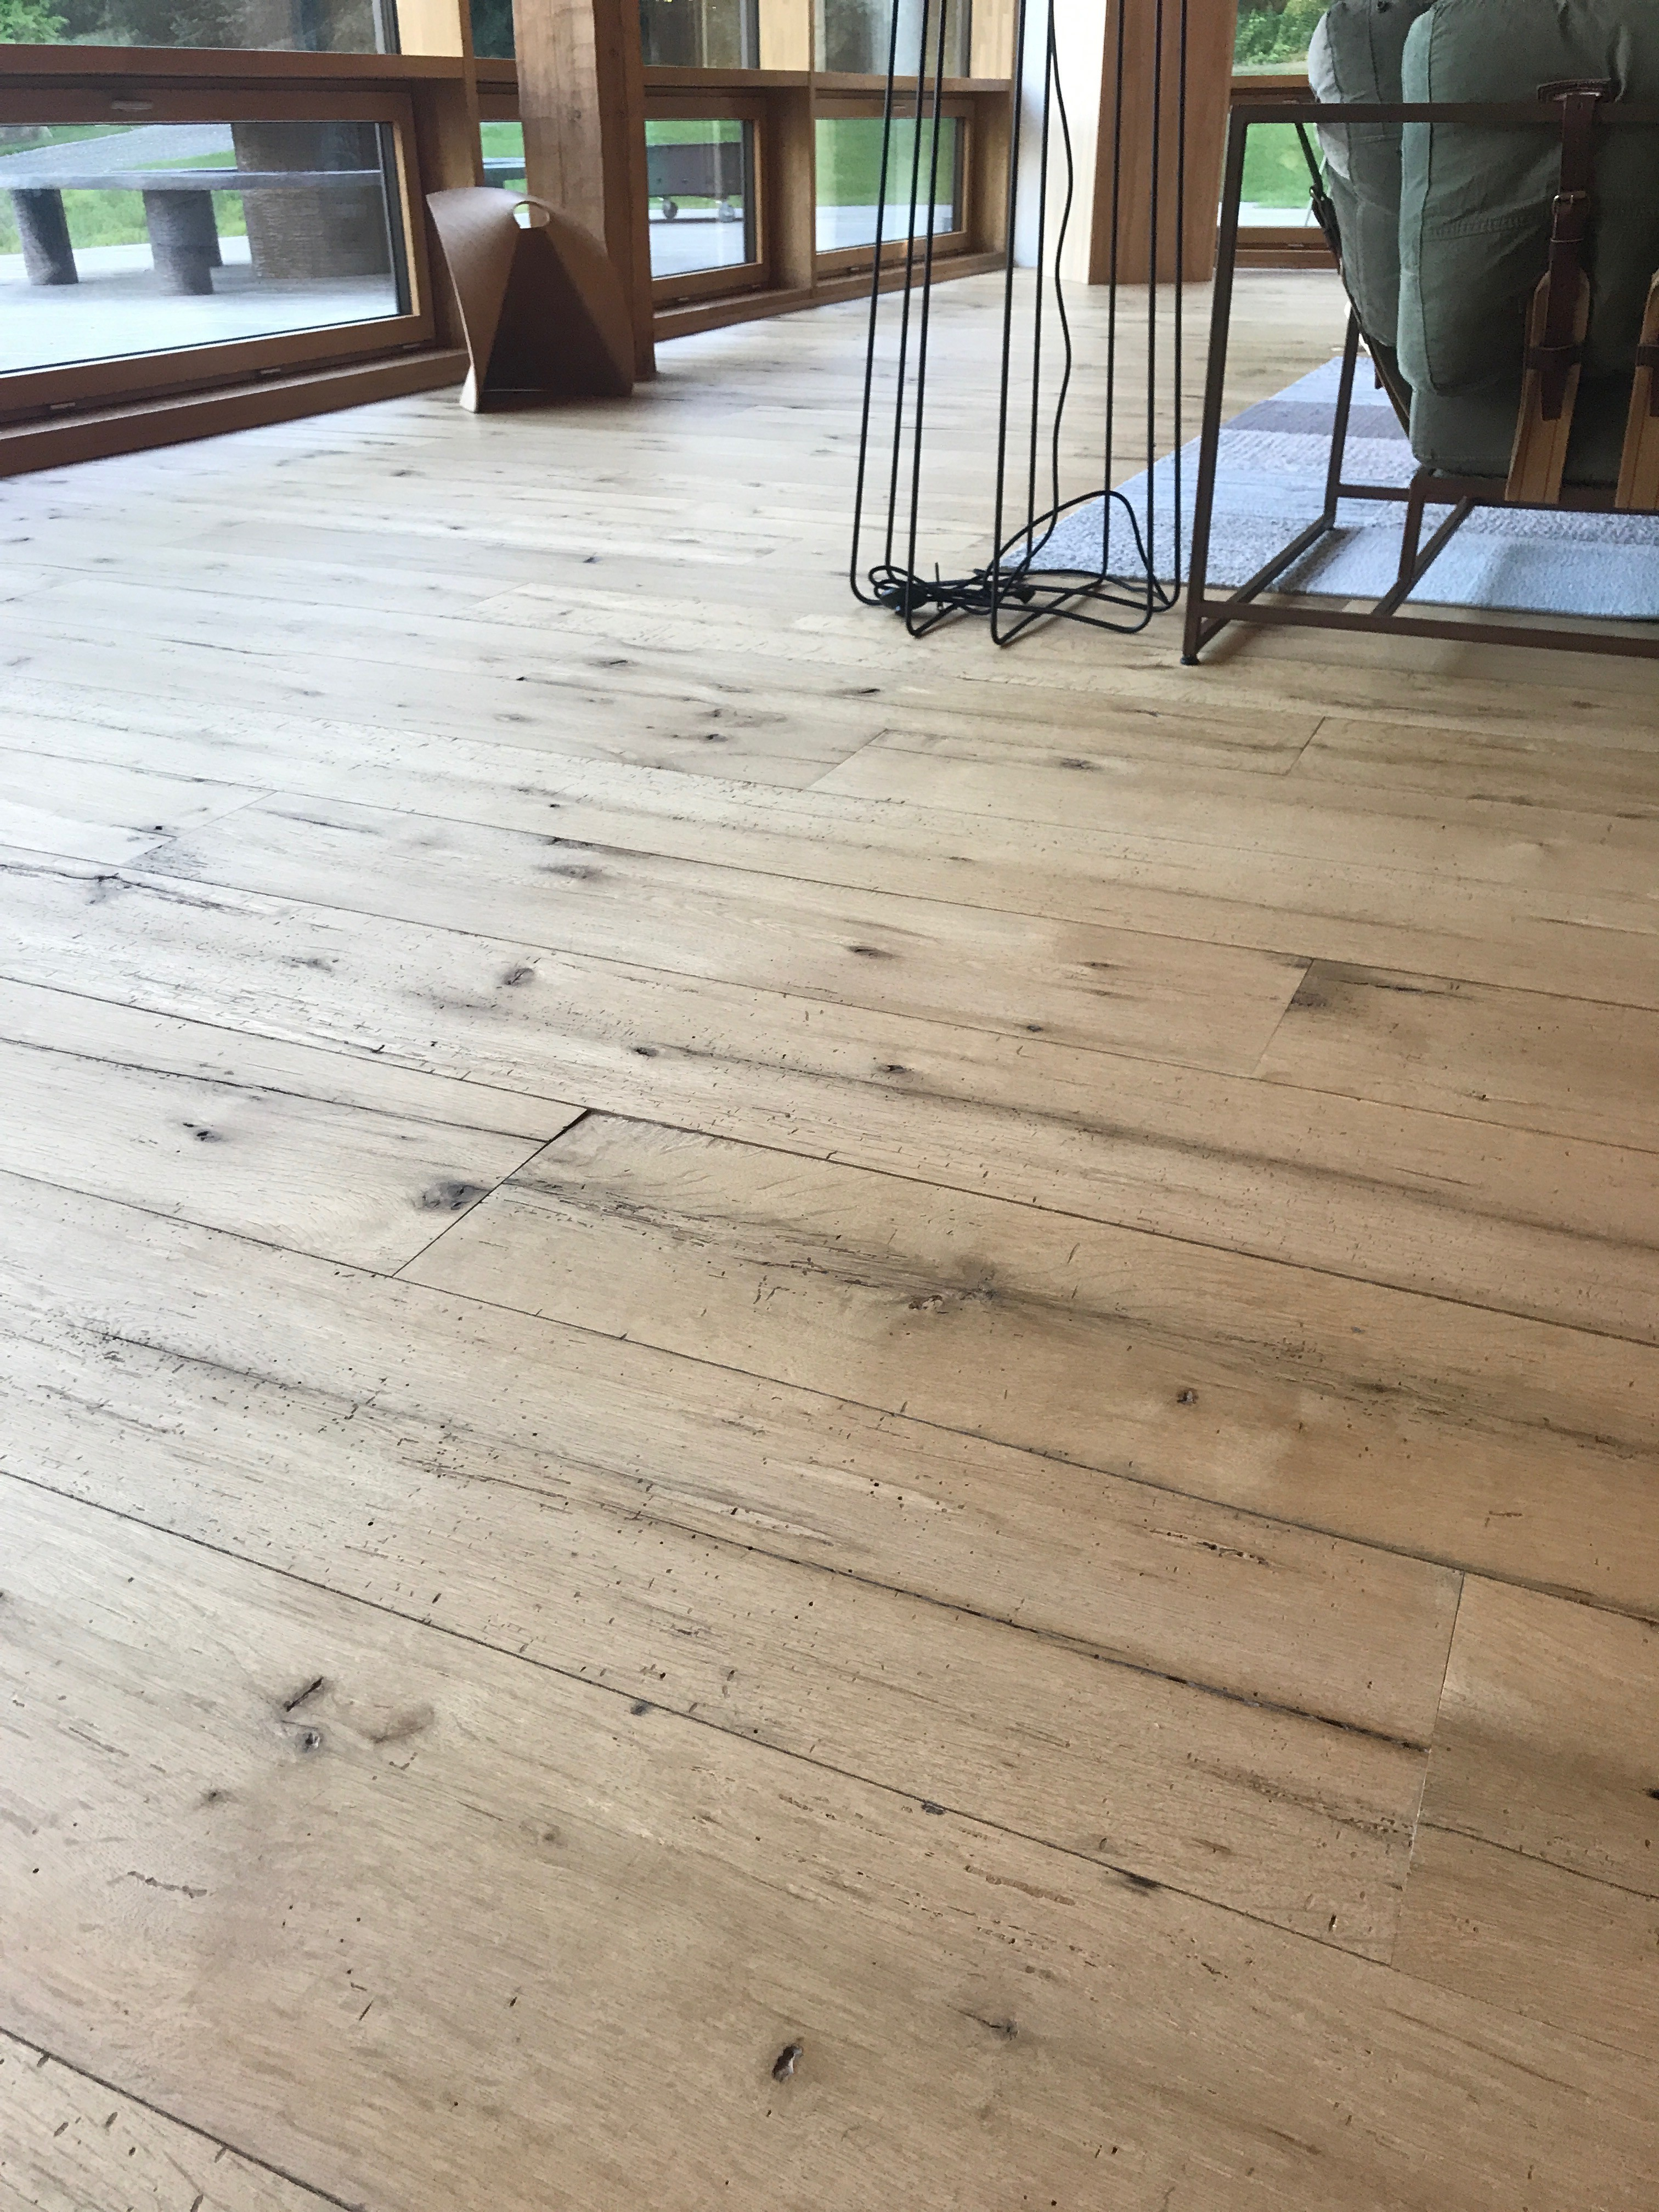 Antique white oak flooring at the Alnoba Retreat conference center in Kensington, New Hampshire